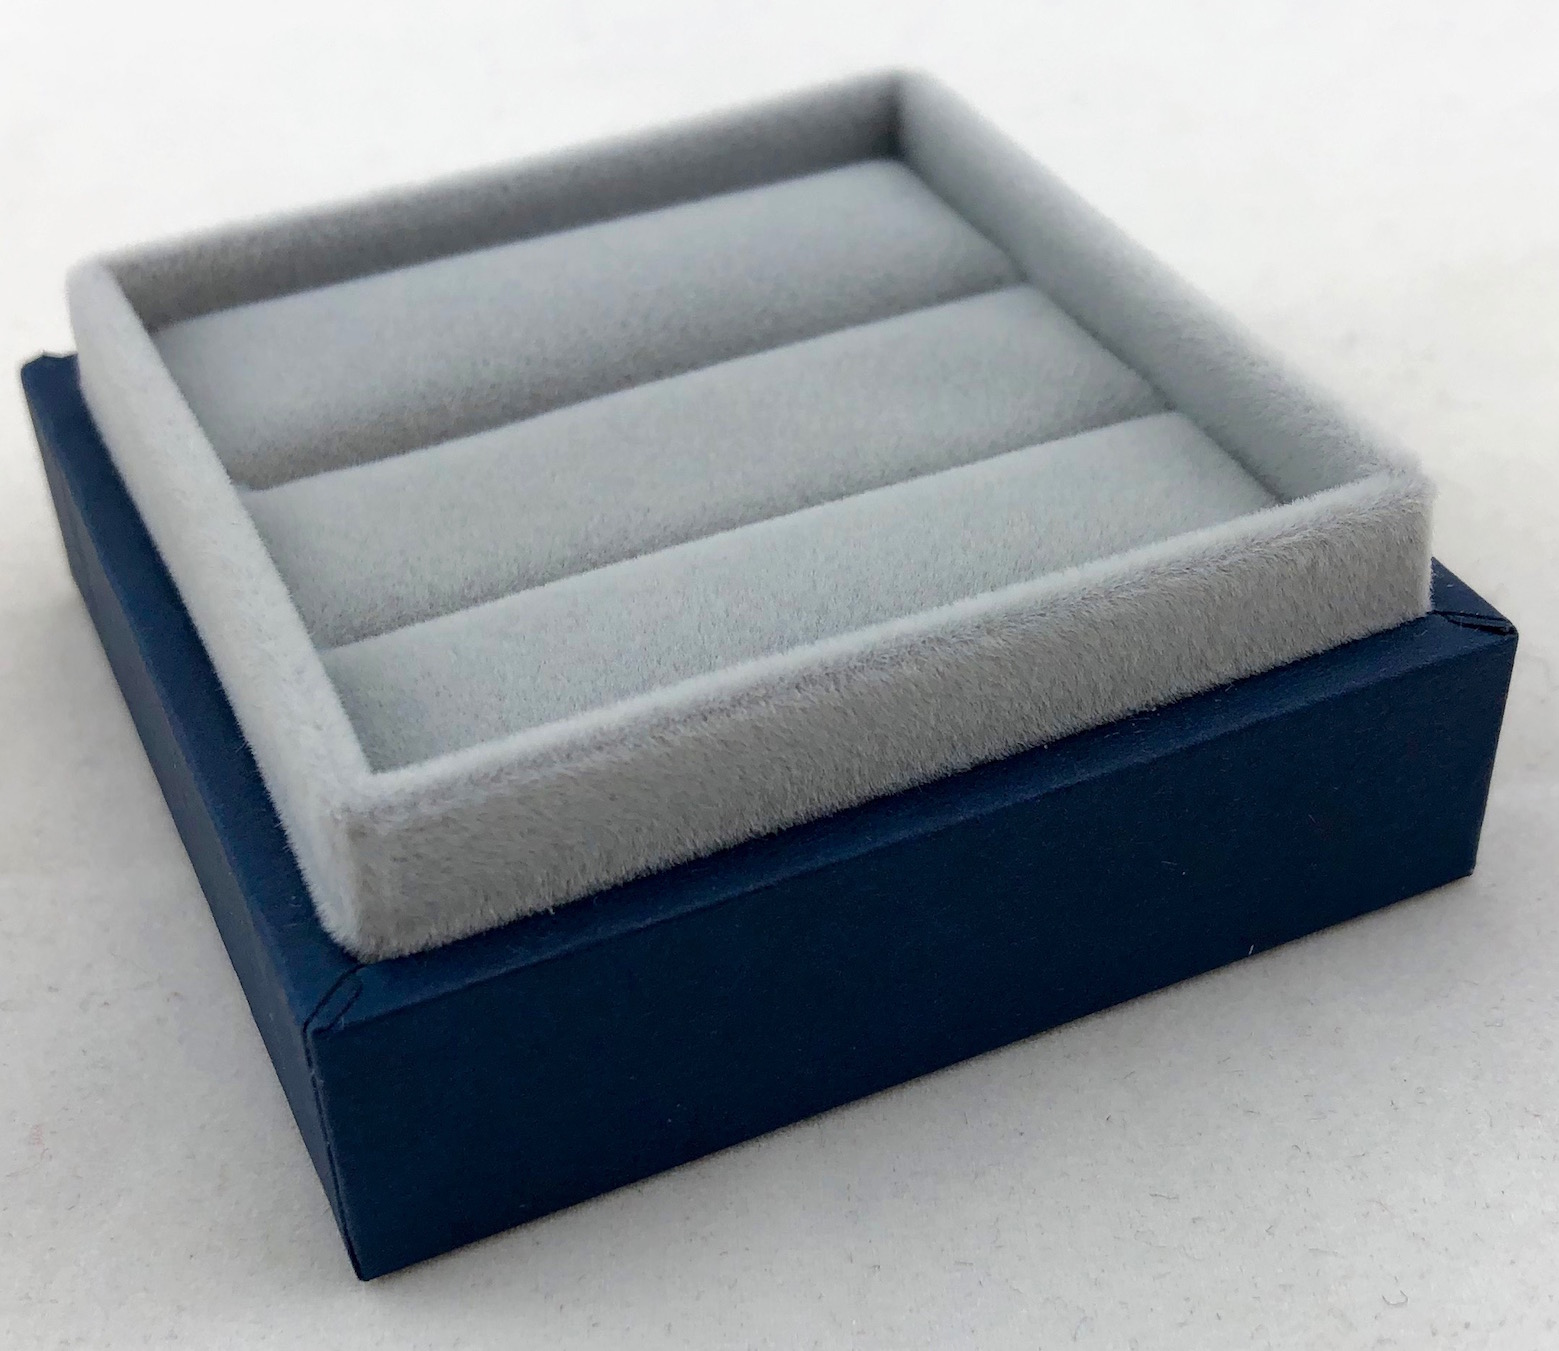 New Blue Envy Double Ring Box